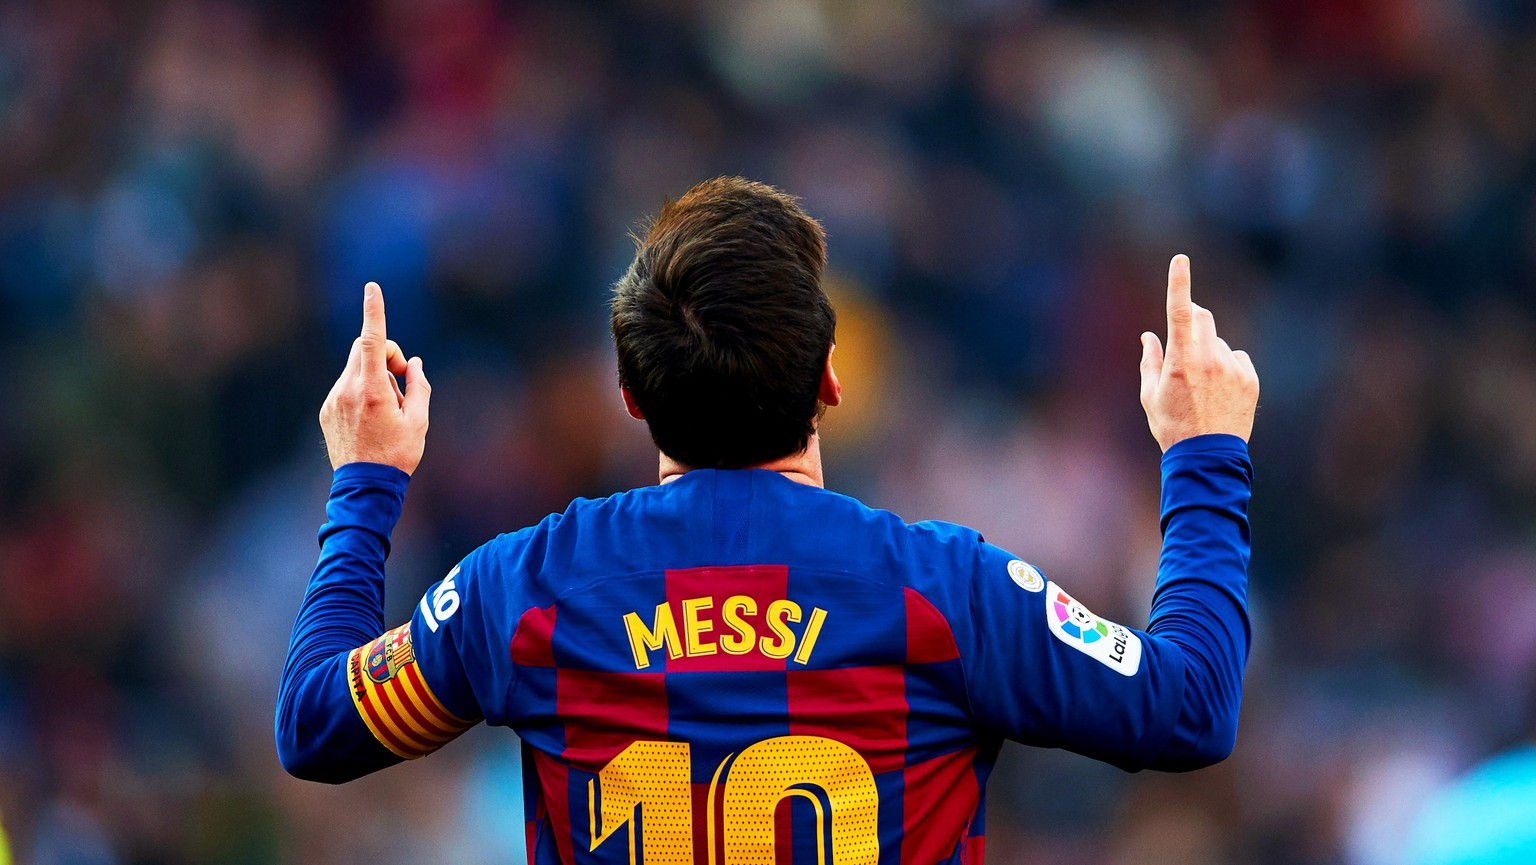 epa08237931 FC Barcelona's Argentinian striker Lionel Messi celebrates after scoring the 2-0 lead during the Spanish La Liga soccer match between FC Barcelona and SD Eibar at Camp Nou in Barcelona, Spain, 22 February 2020.  EPA/ALEJANDRO GARCIA